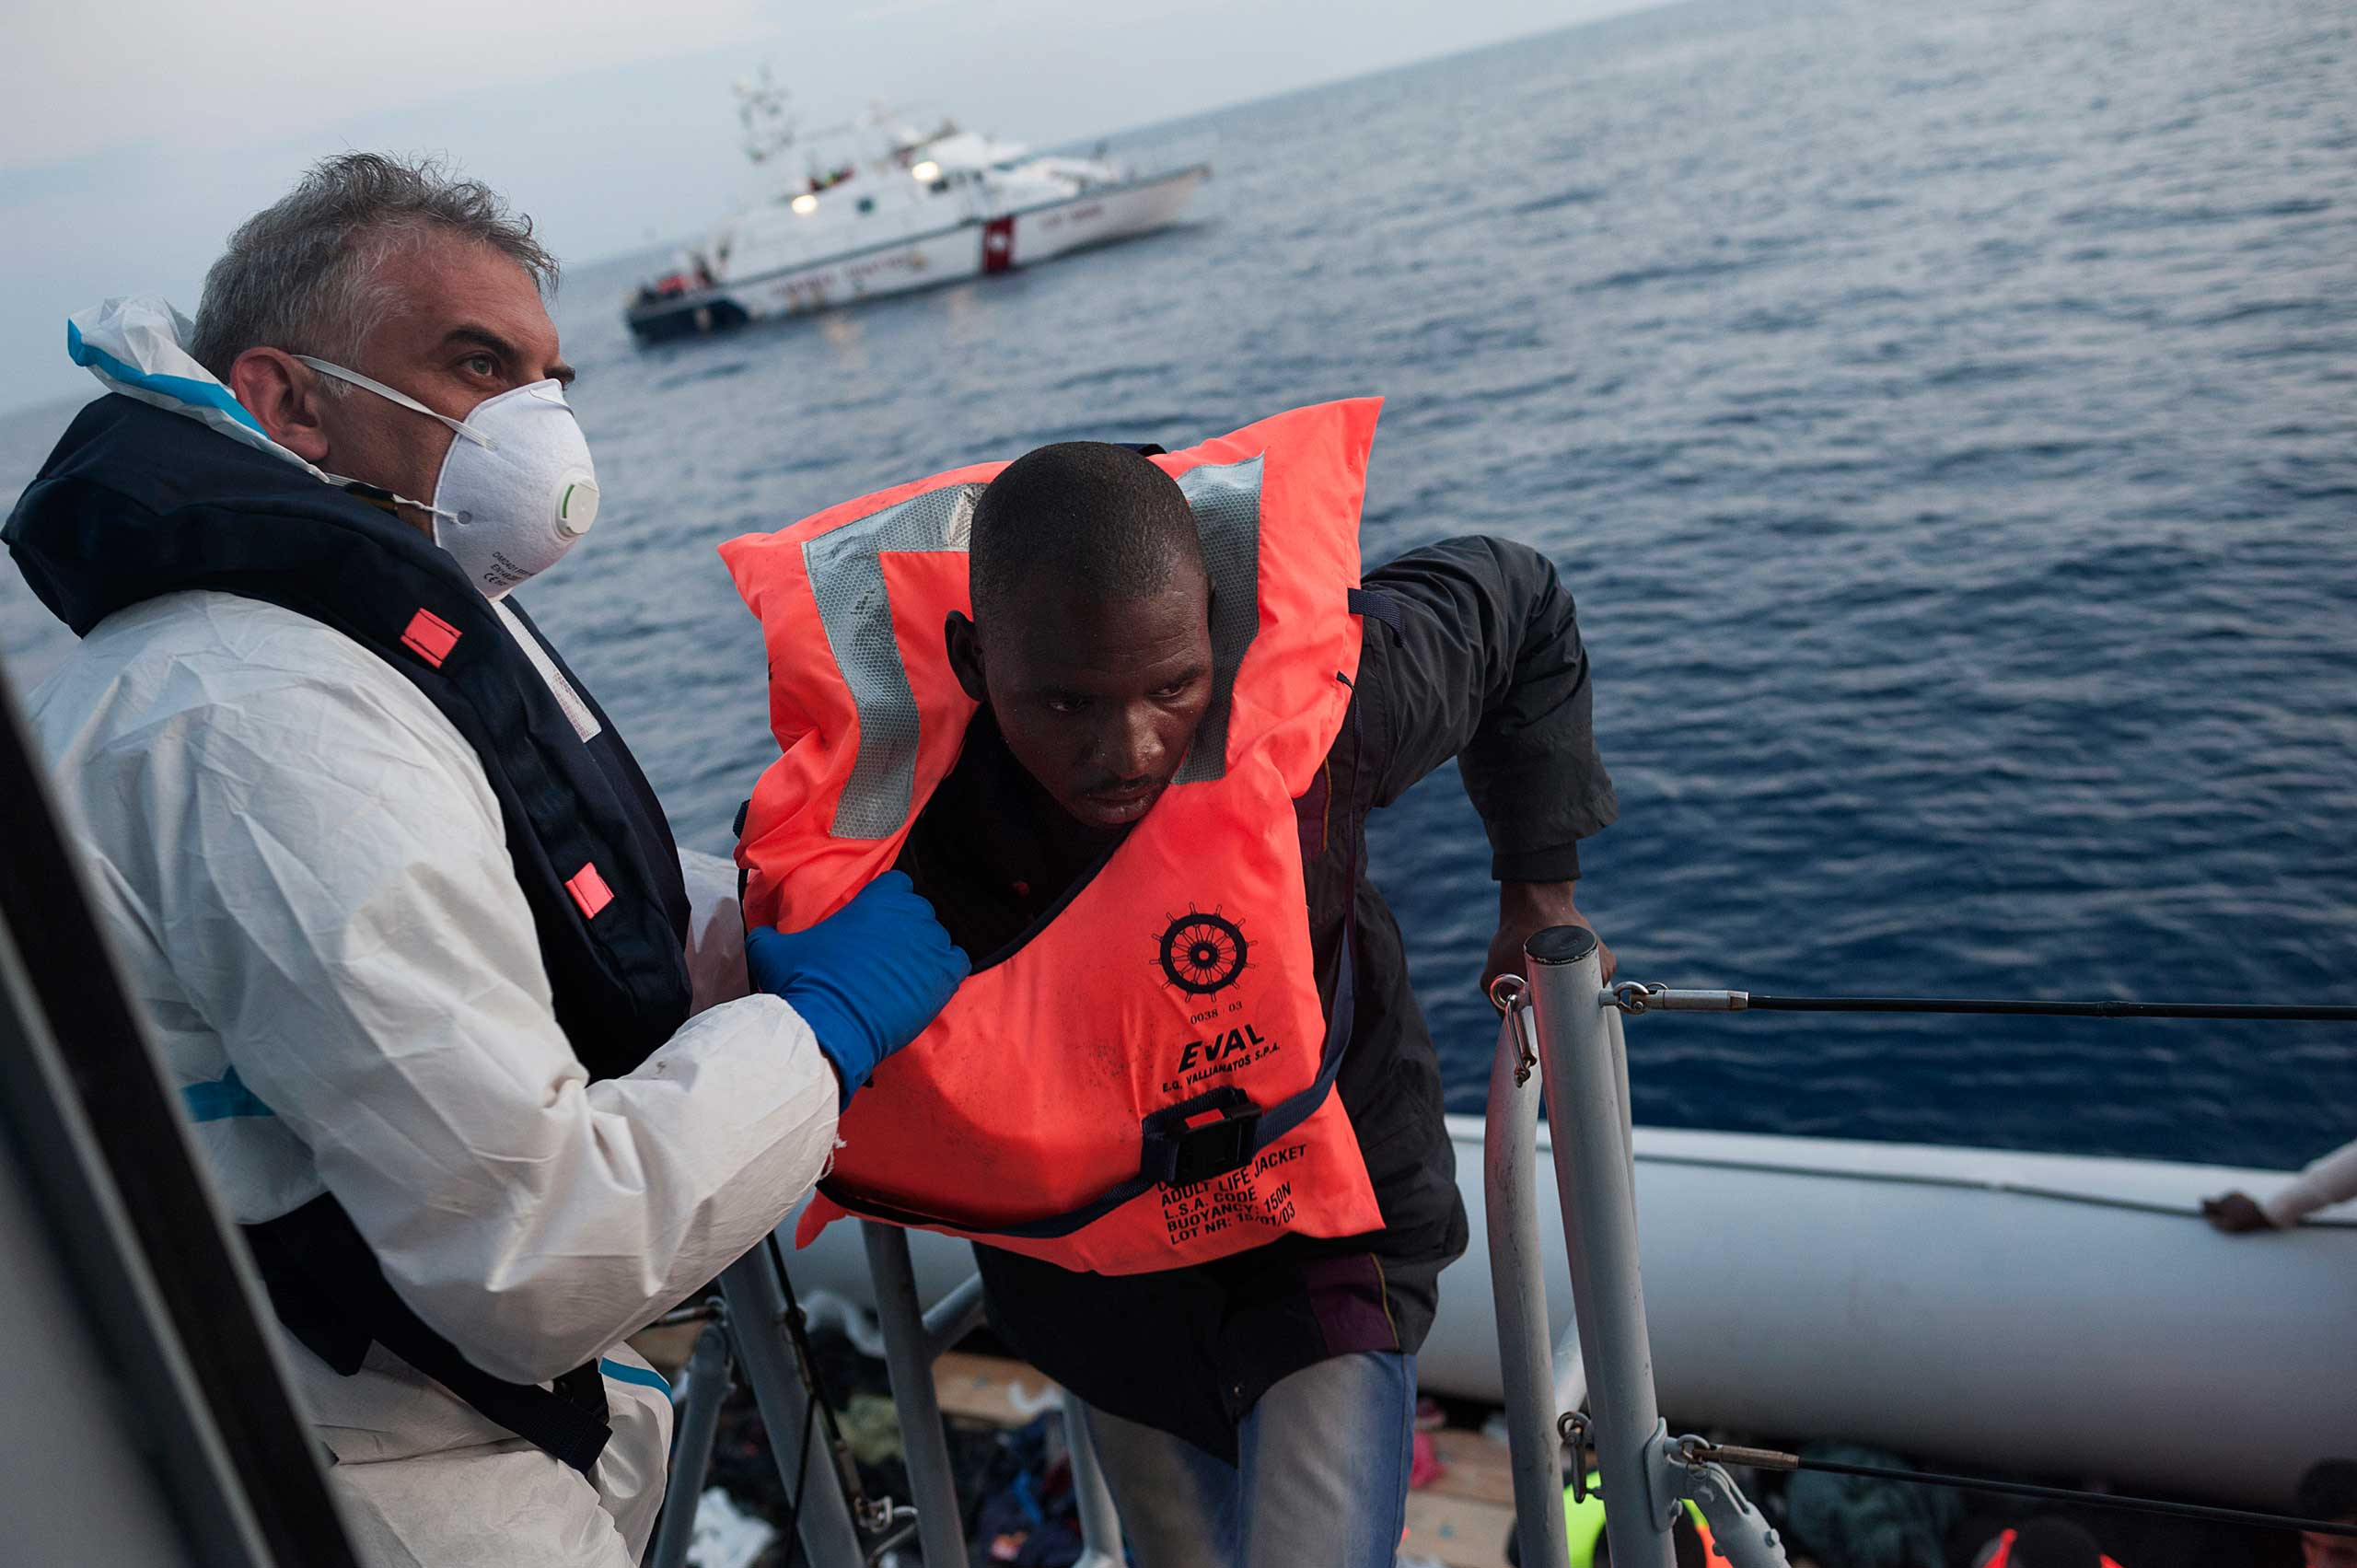 A member of Italy's Guardia di Finanza brings a migrant aboard after they were rescued from an inflatable boat, which originated in Libya and was found some 120 miles off the Italian coast in the Mediterranean, on June 6, 2015.